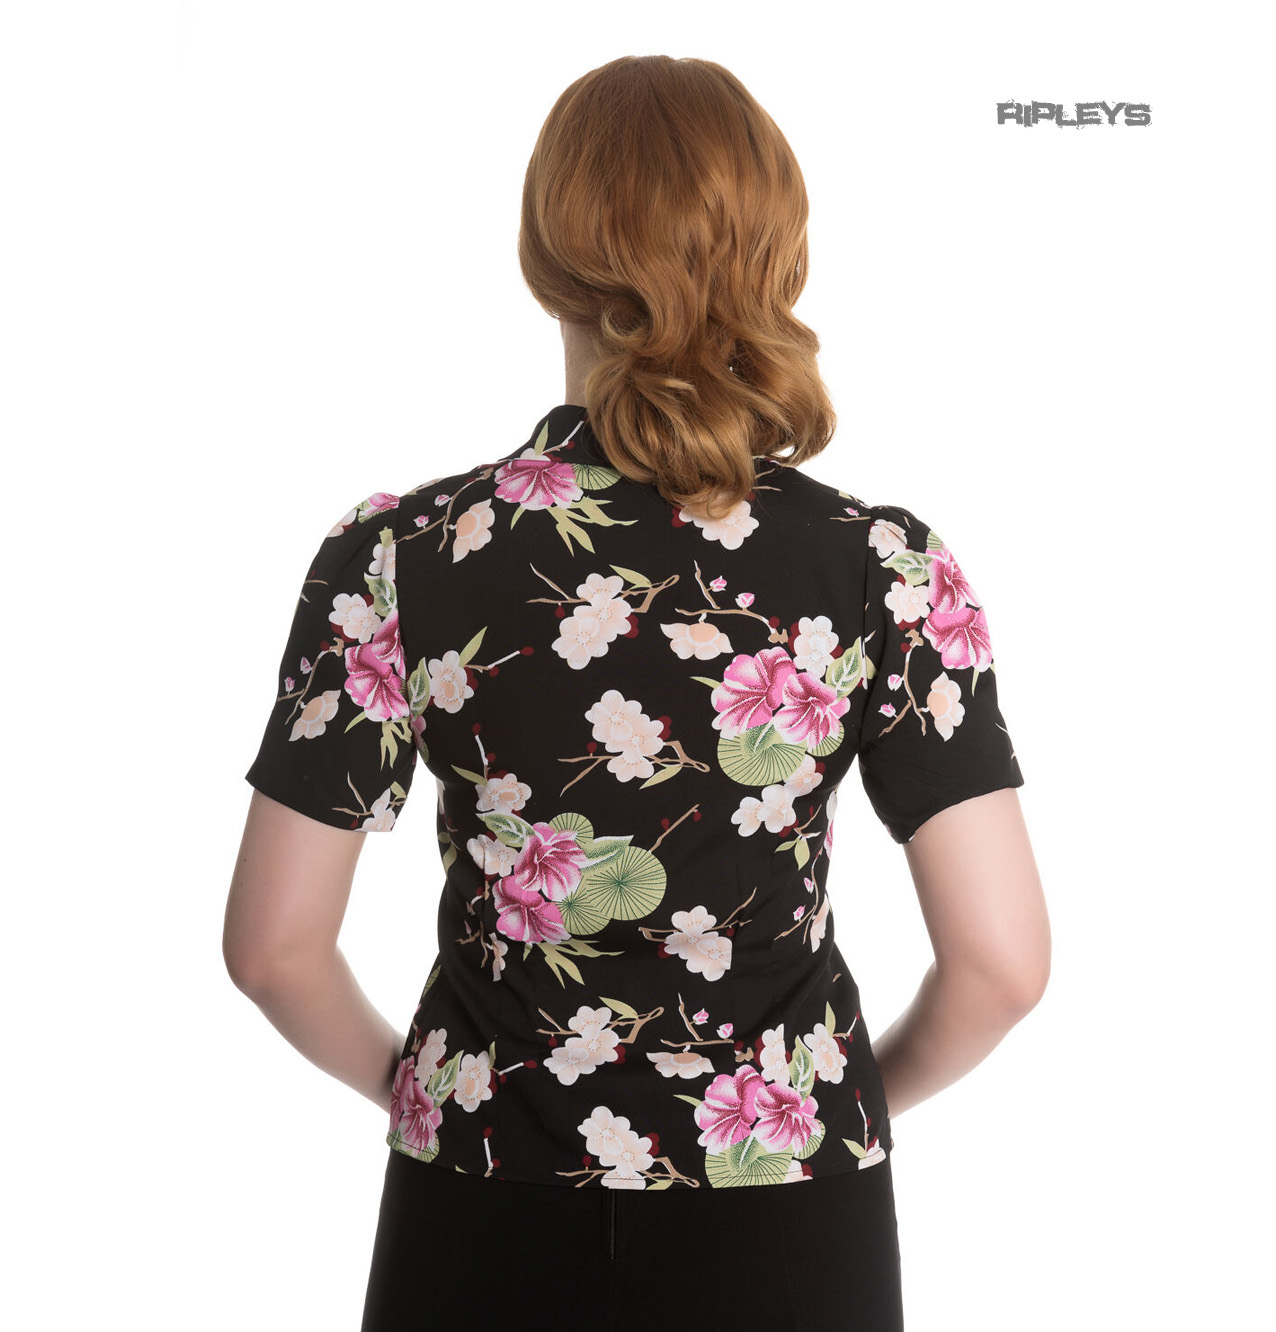 Hell-Bunny-Shirt-Top-40s-50s-Black-FREYA-Pink-Flowers-Floral-Blouse-All-Sizes thumbnail 4